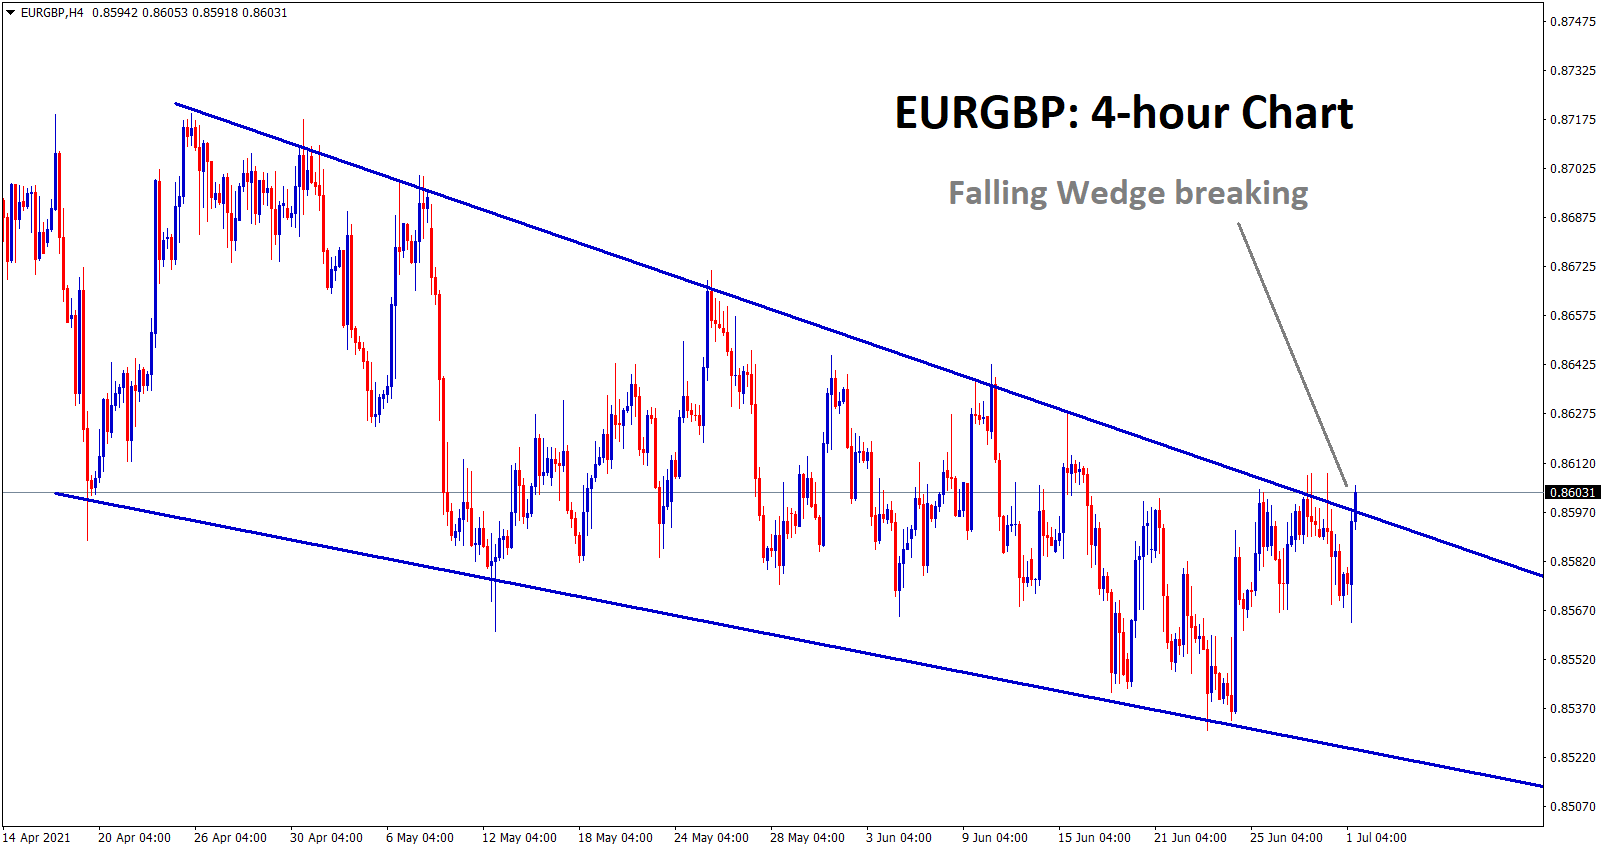 Eurgbp is breaking the top level of the falling wedge